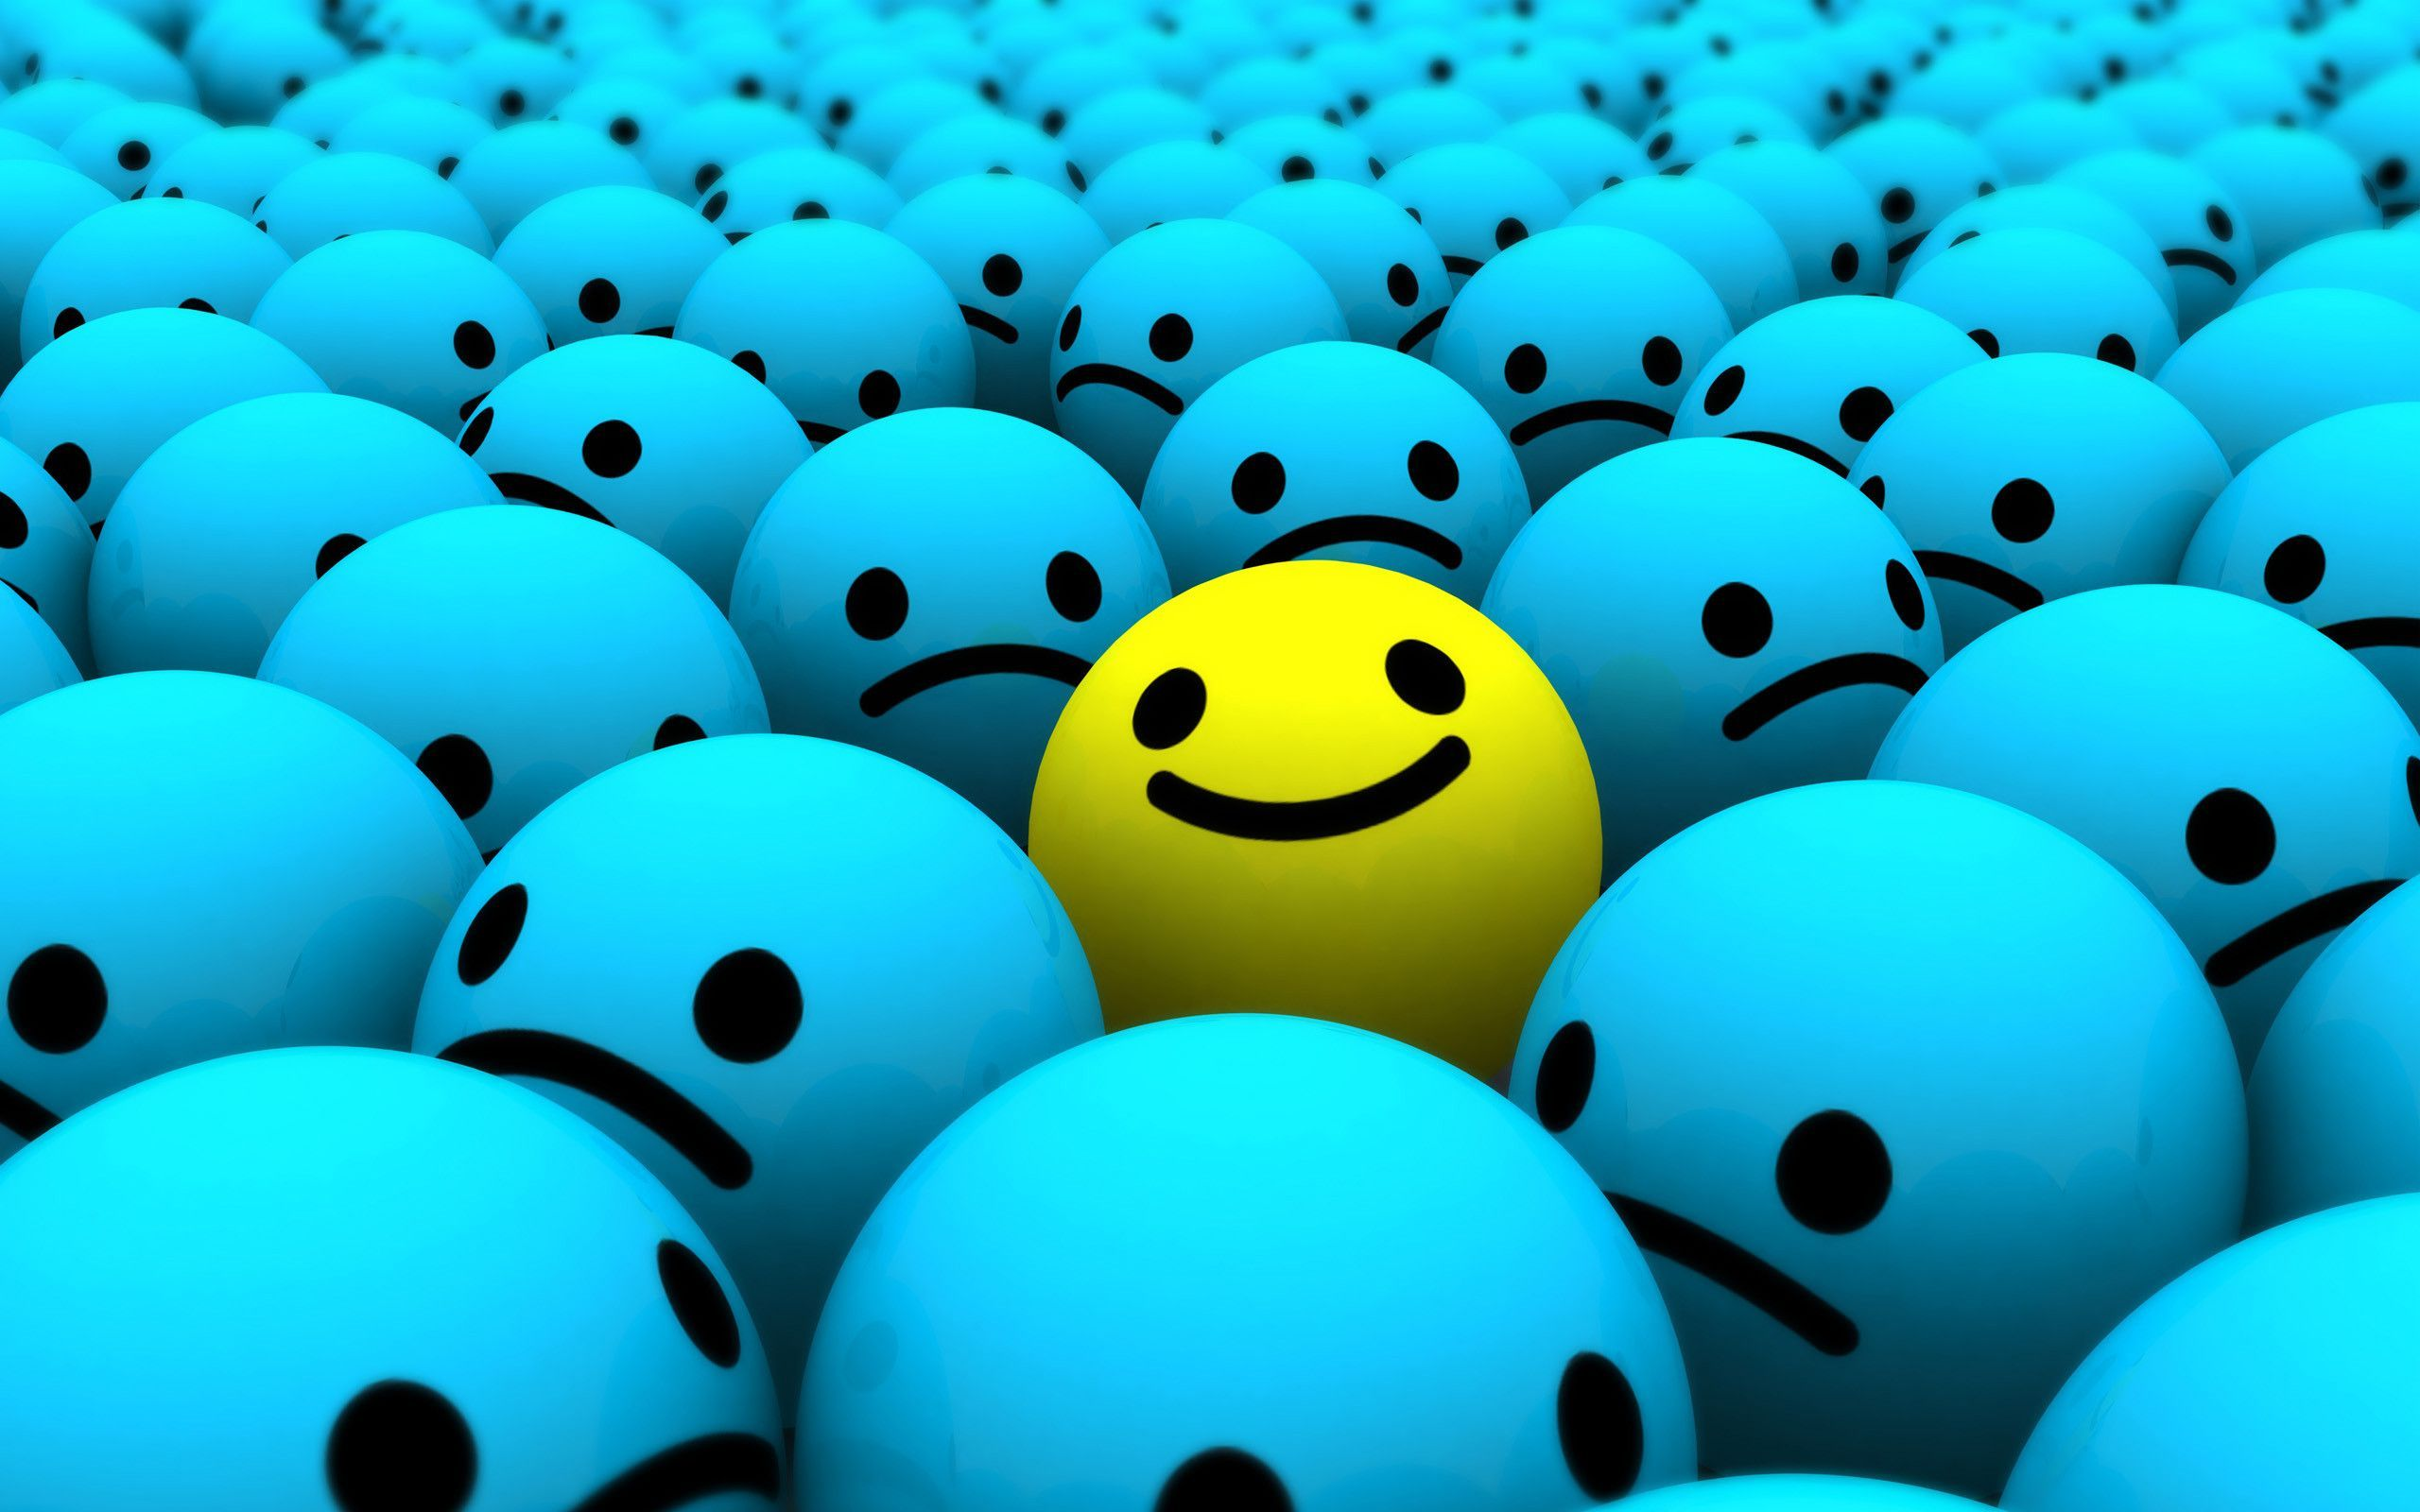 Smiley Face Desktop Wallpaper